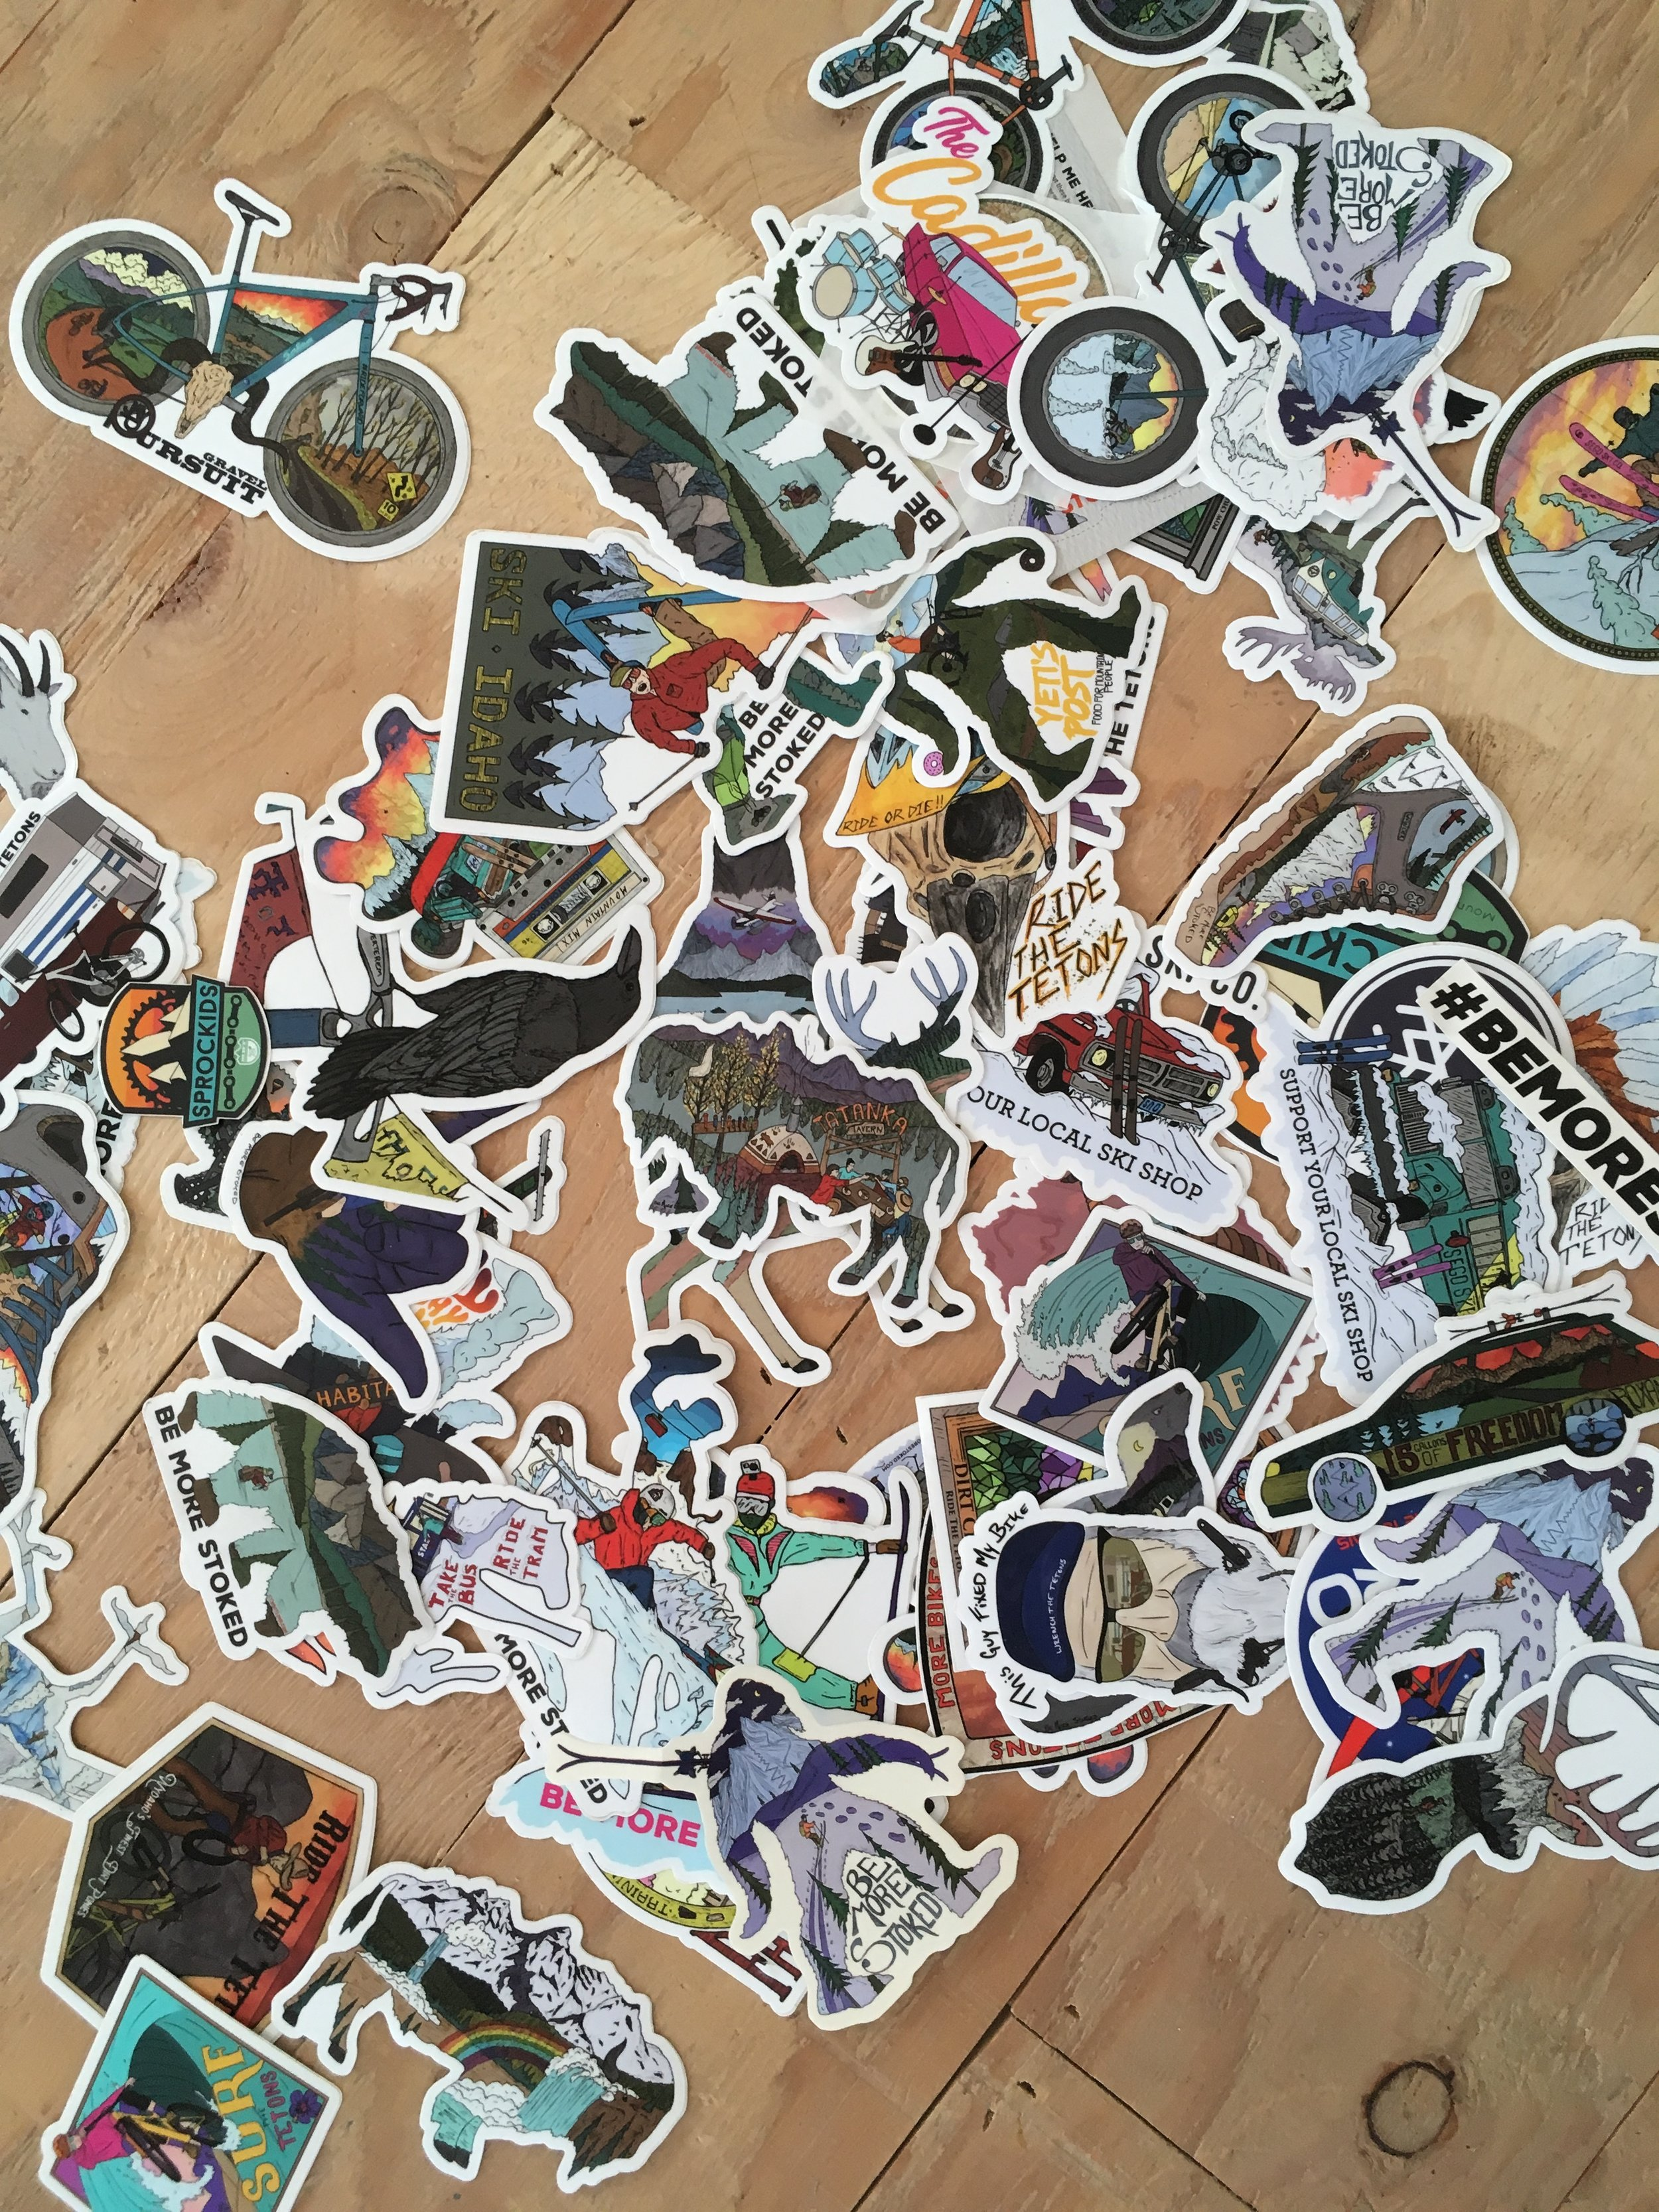 Free Stickers! — Be More Stoked